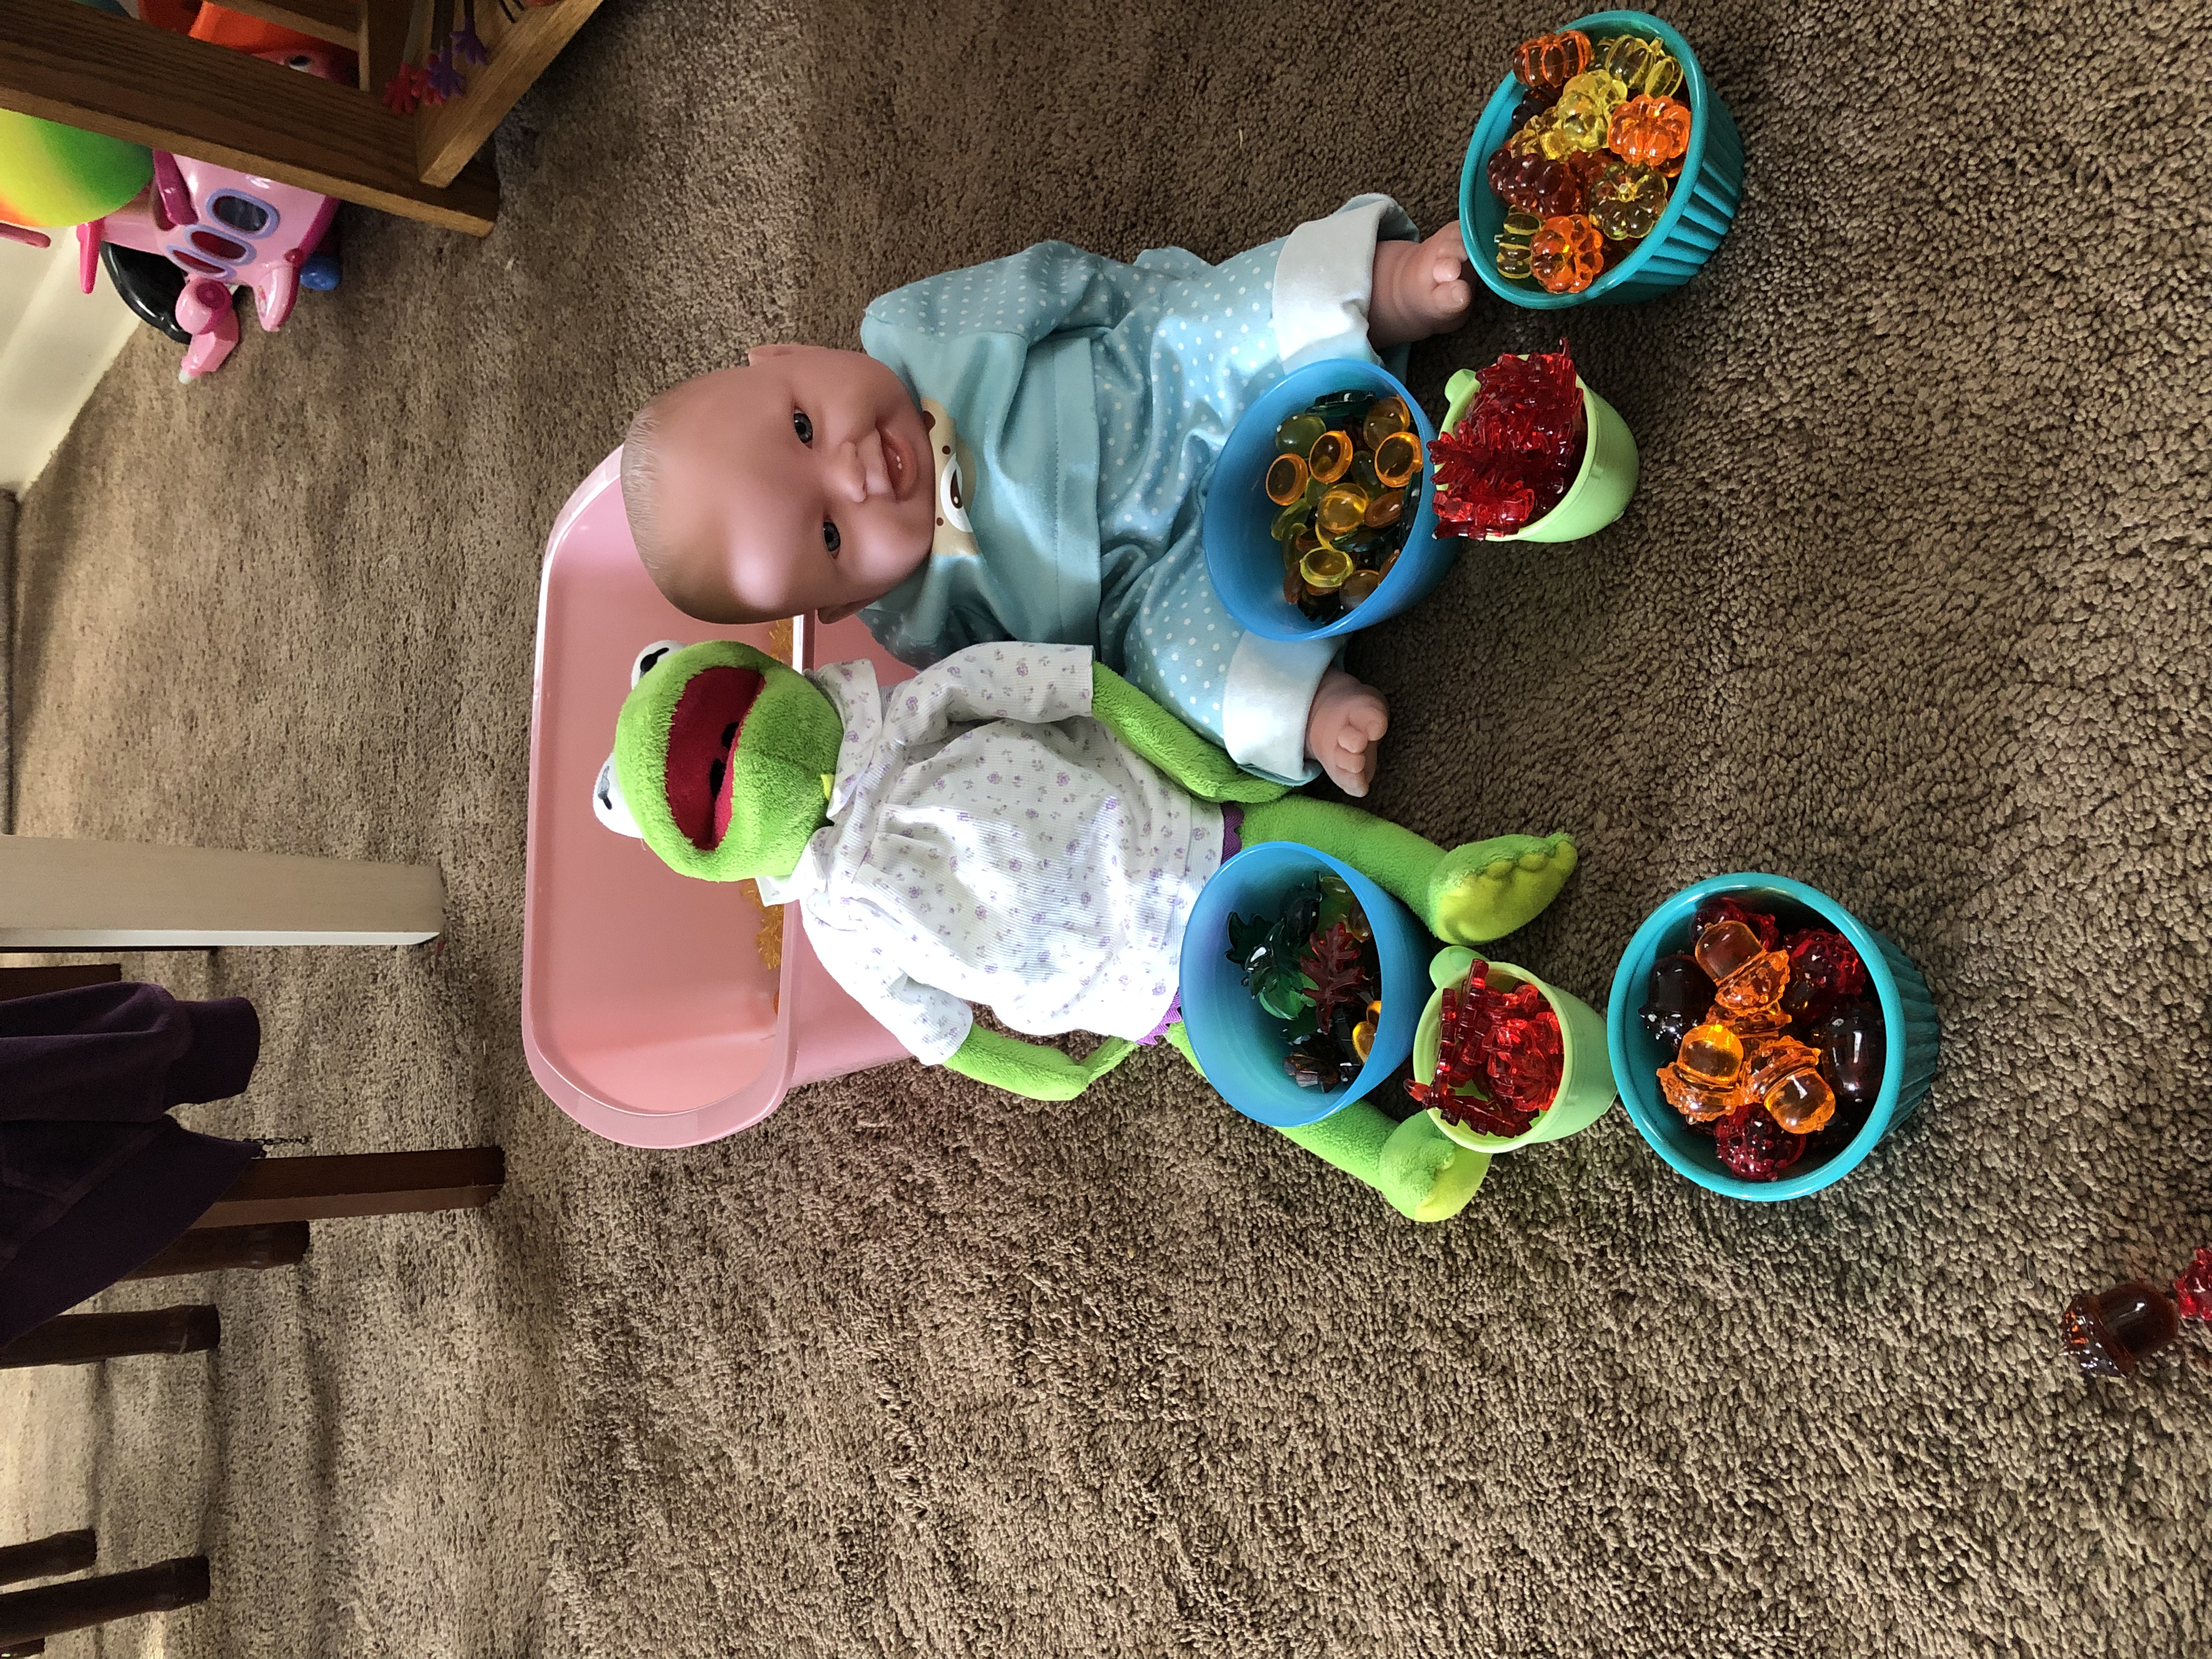 A baby doll and Kermit with bowls of Halloween items.